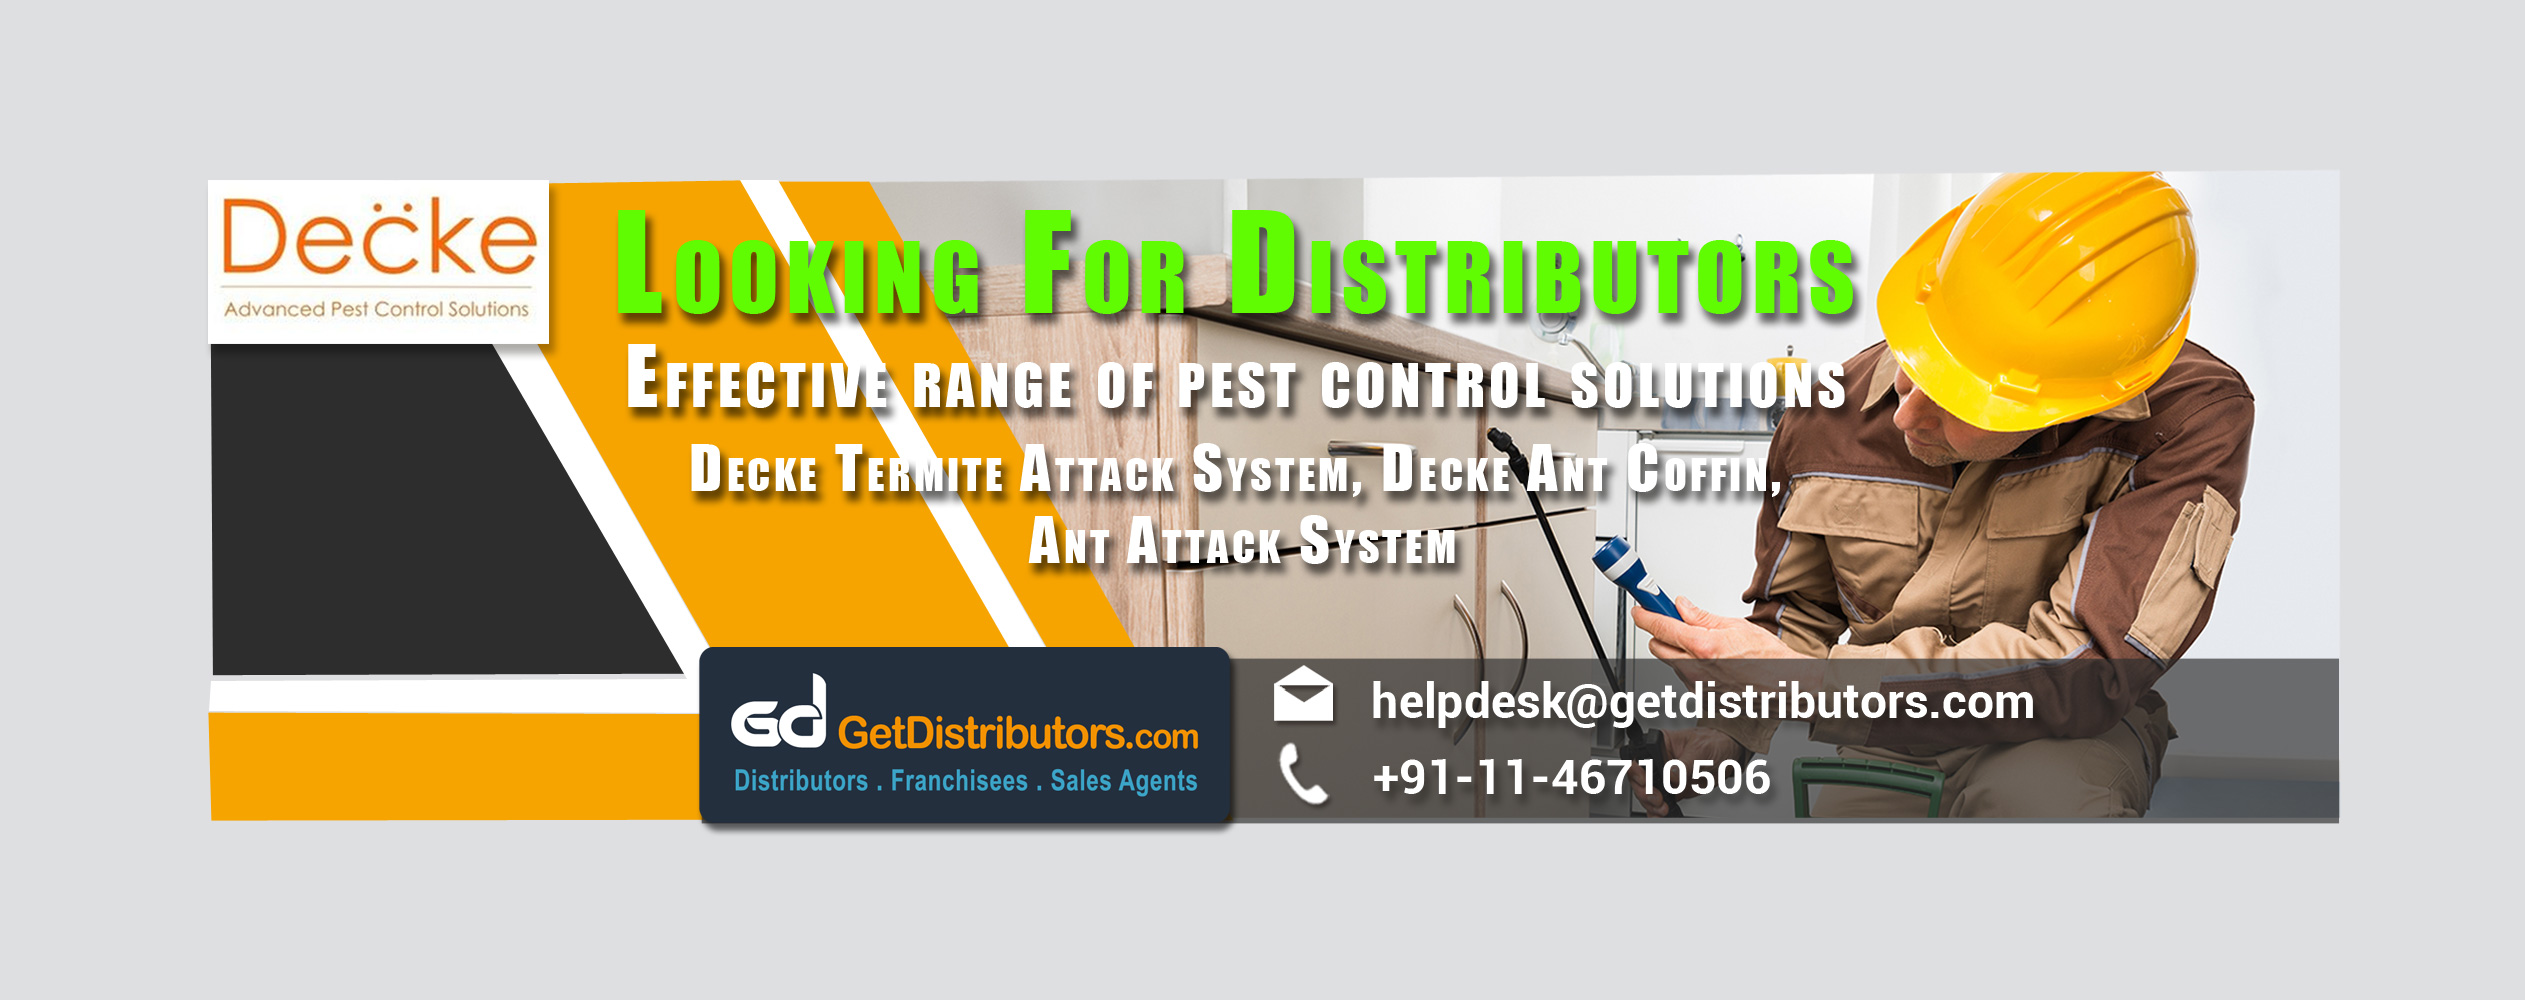 Decke Innovative Products Offering Effective Range of Pest Control Solutions